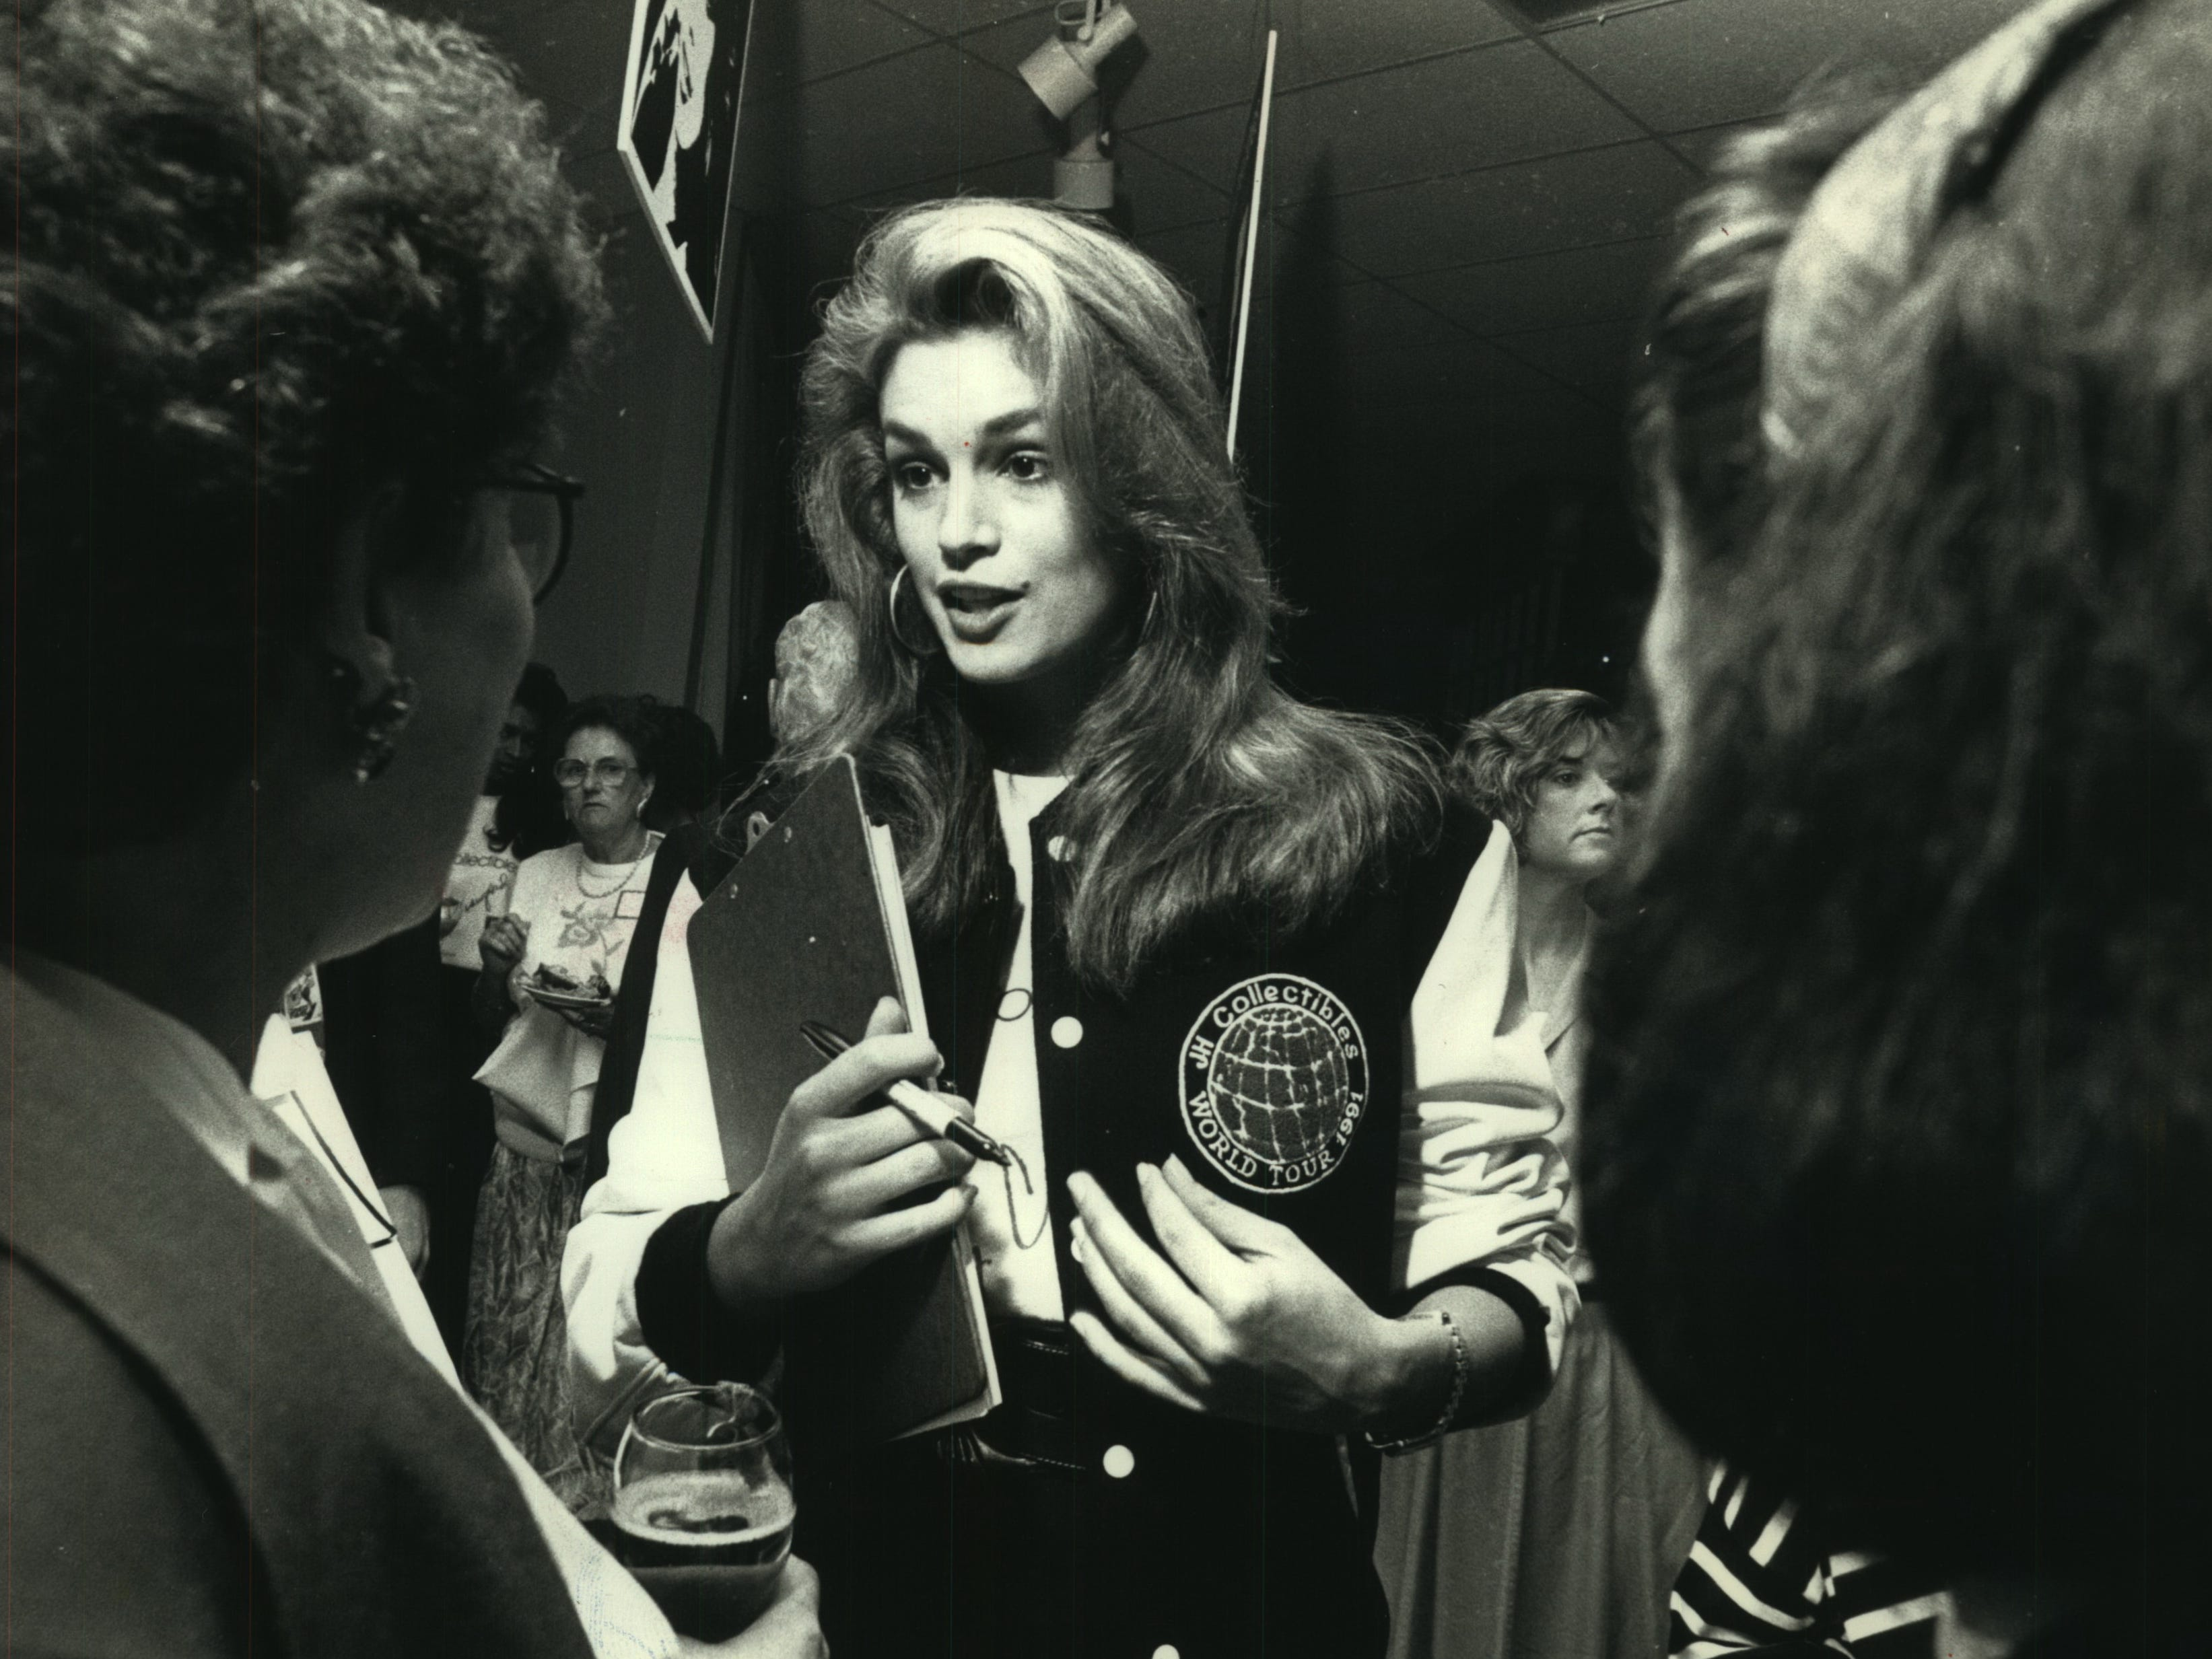 """Supermodel Cindy Crawford chats with fans at Mayfair Mall's Boston Store, September 8, 1991. Crawford was helping to promote the JH Collectibles line of clothing. Asked if she and her man, actor Richard Gere, plan to marry, Crawford said, 'He hasn't asked yet.' And if he did? I'd probably say 'yes,"""" she said."""